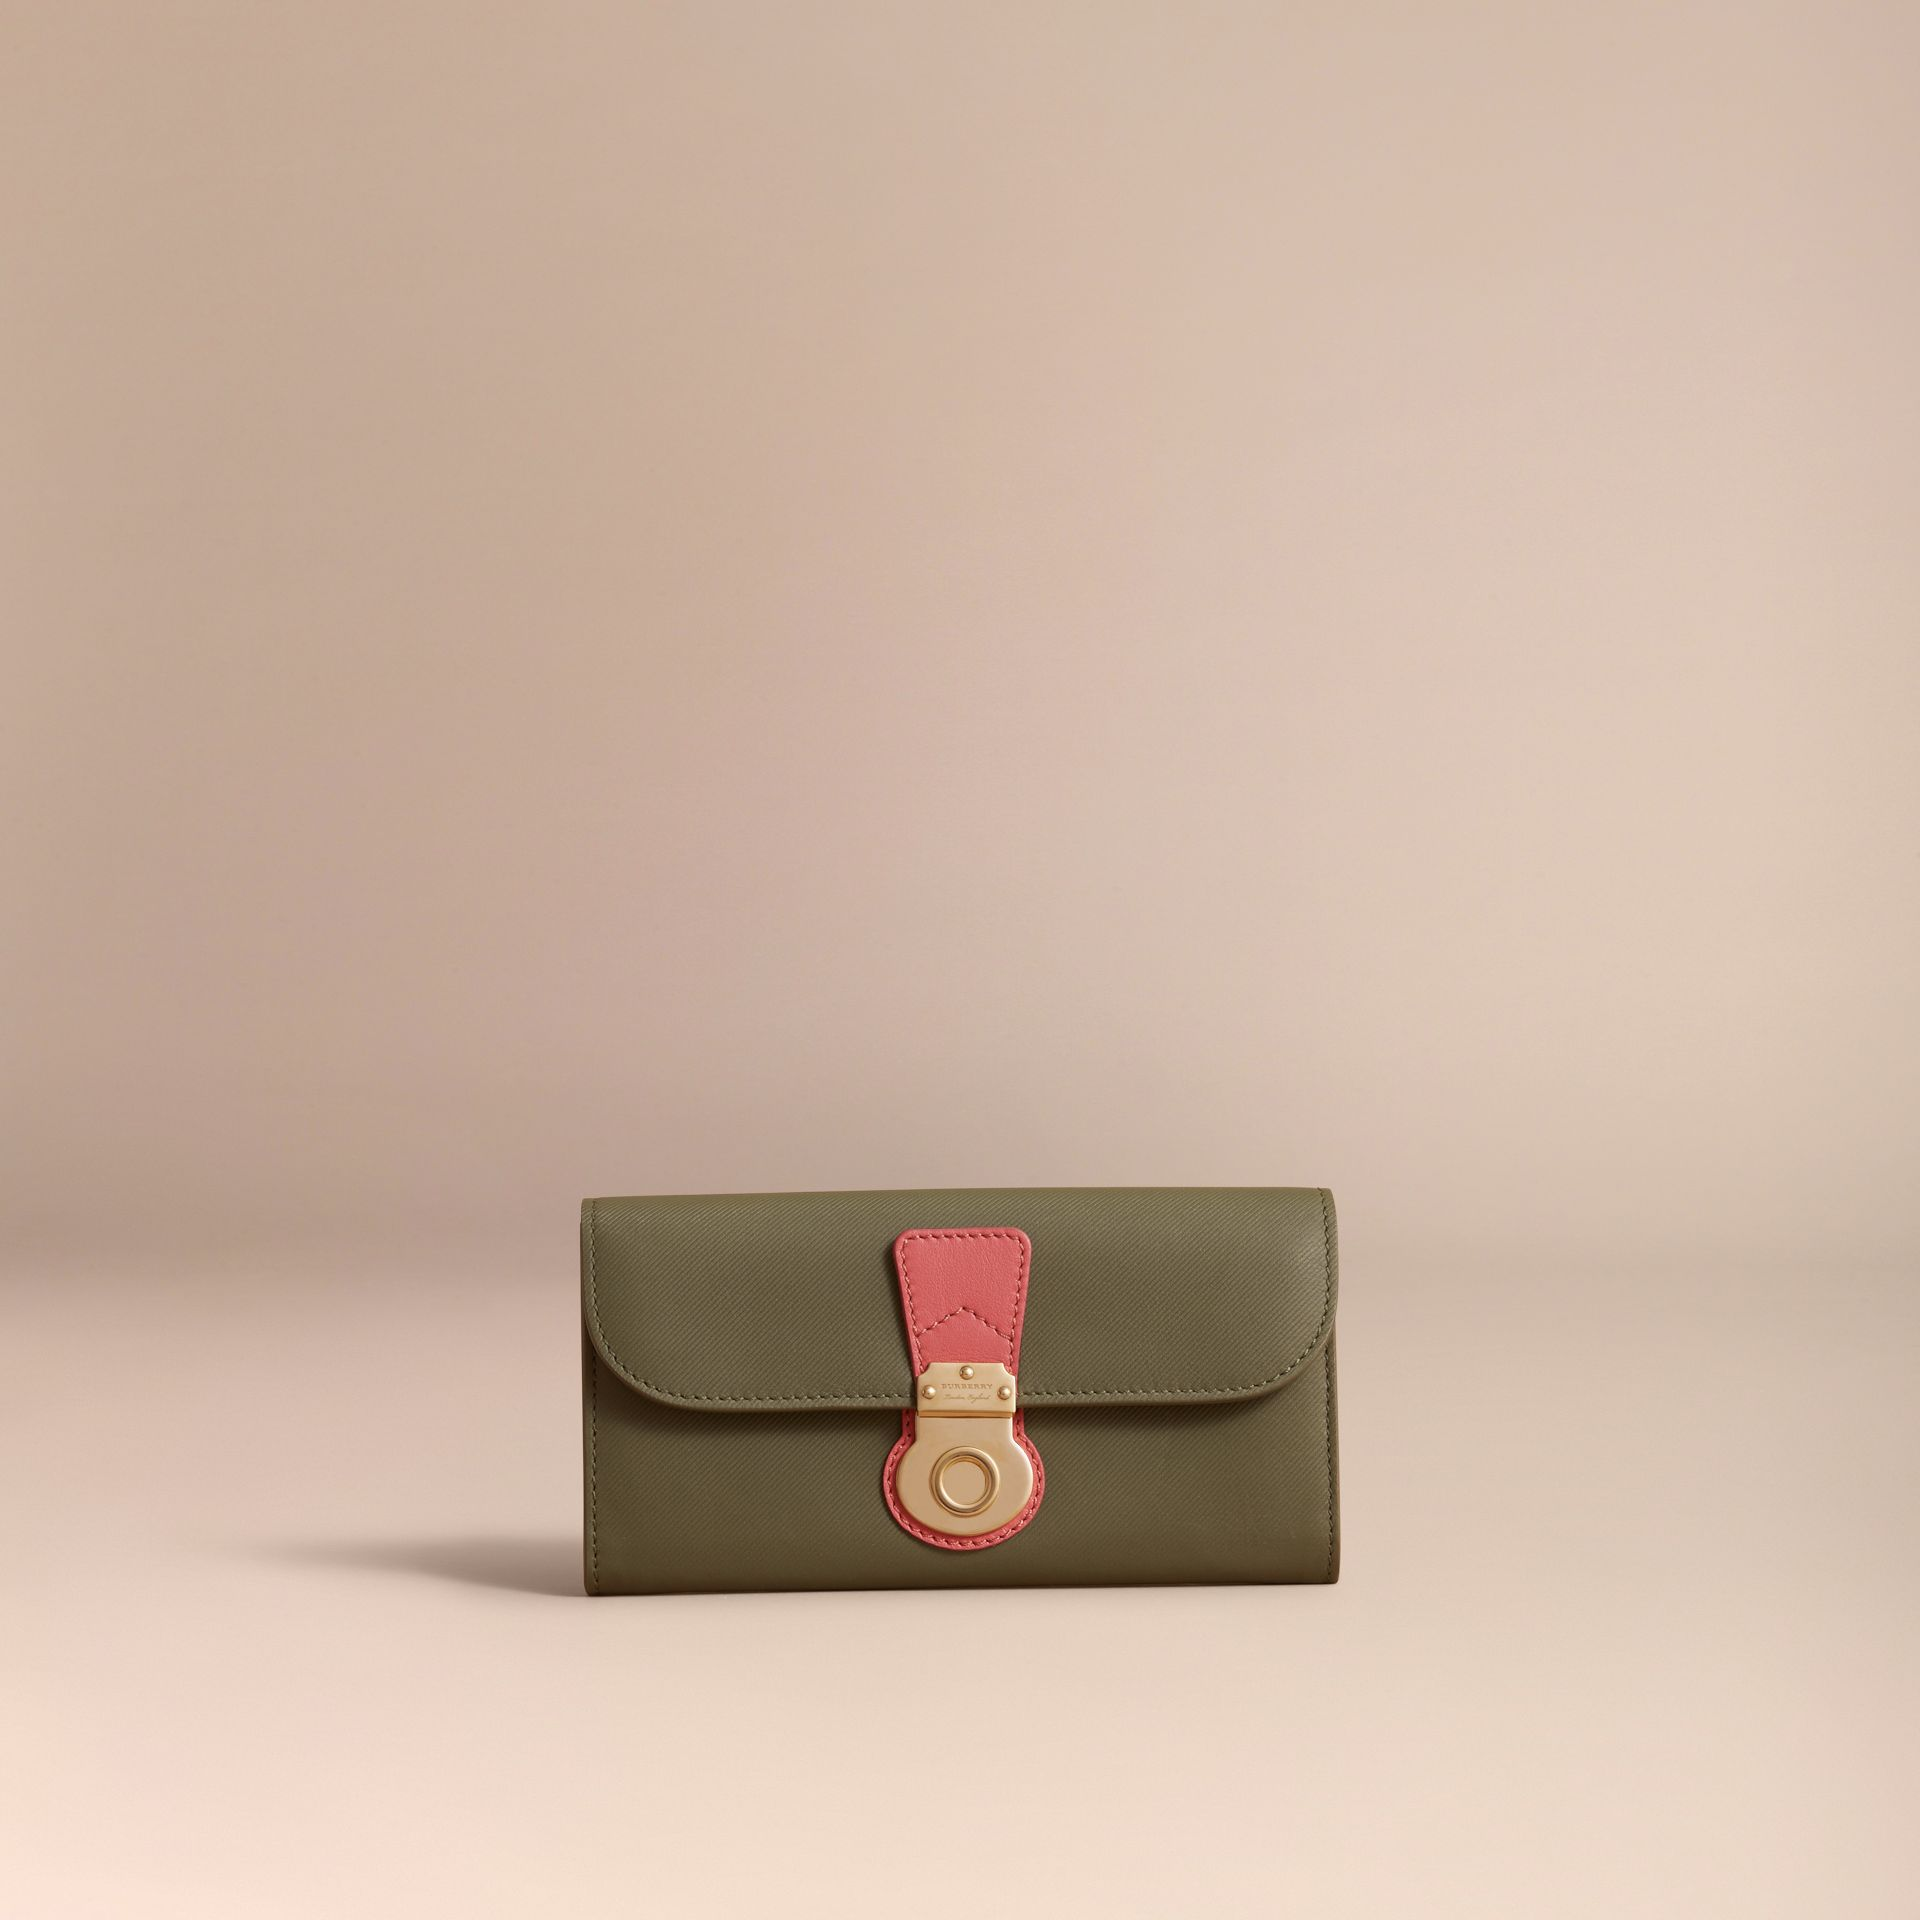 Portefeuille continental en cuir trench bicolore (Vert Mousse/rose Blossom) - Femme | Burberry - photo de la galerie 6